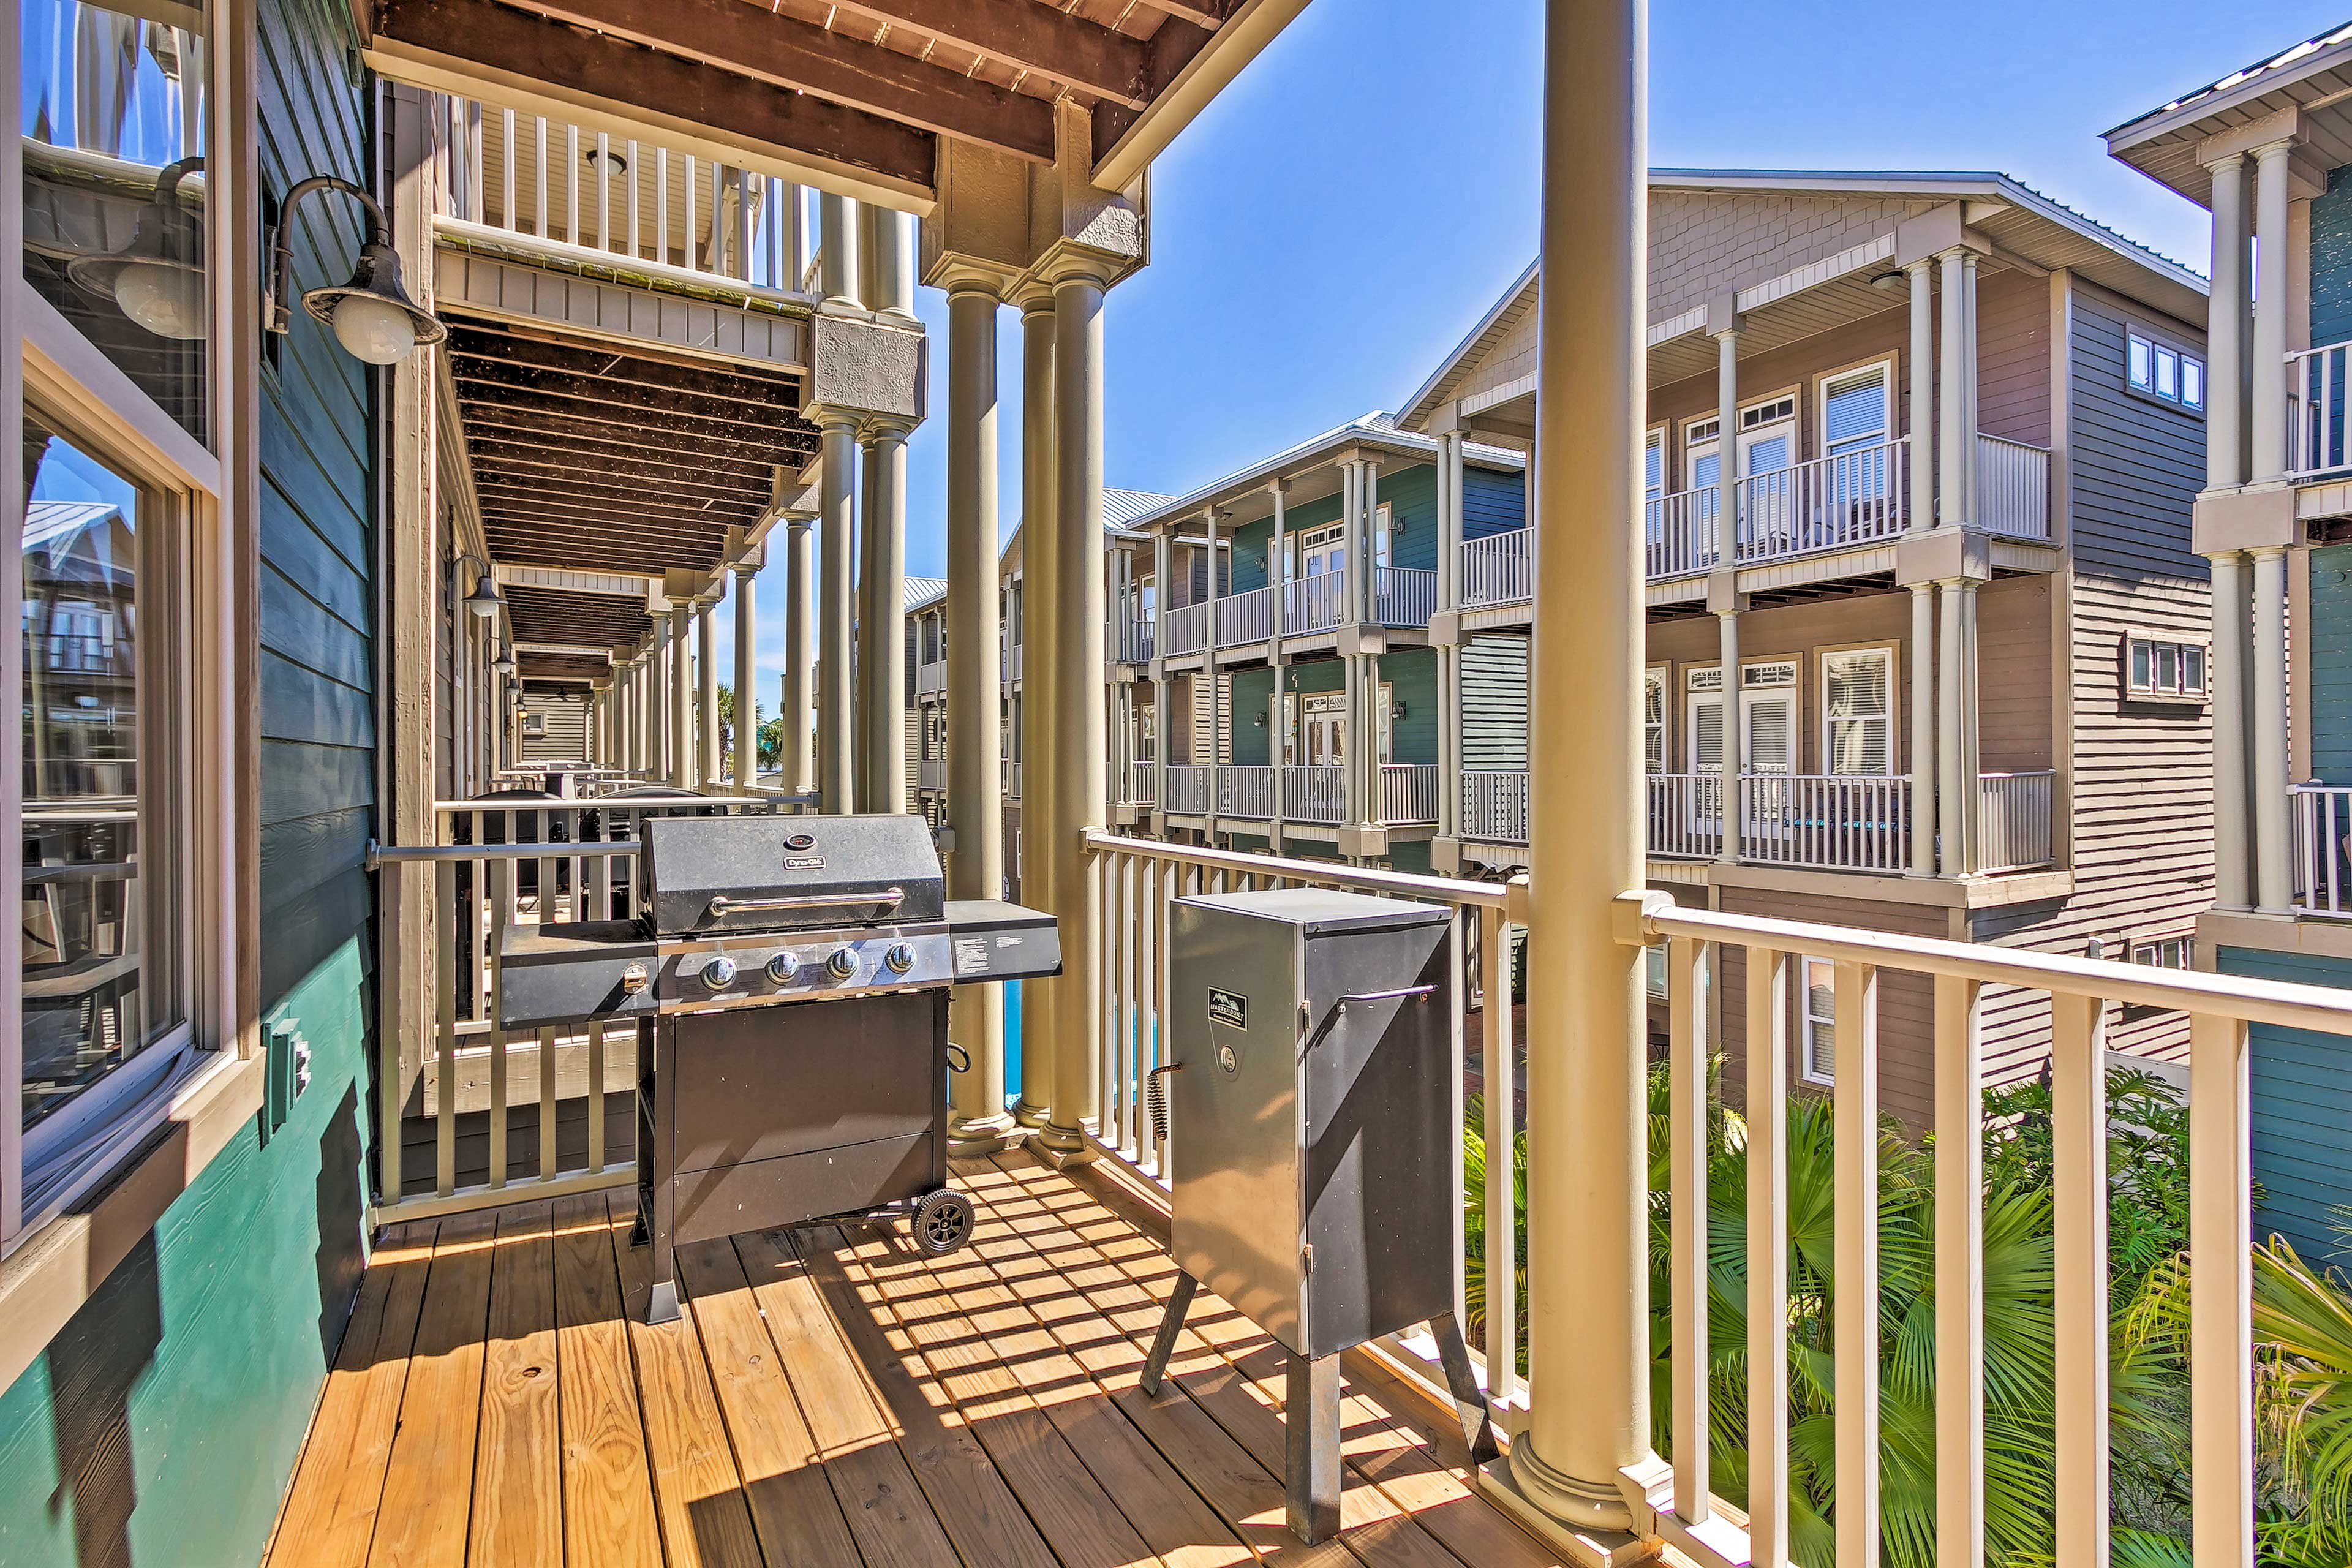 This spacious spot sits just 2 blocks from a beach access point.